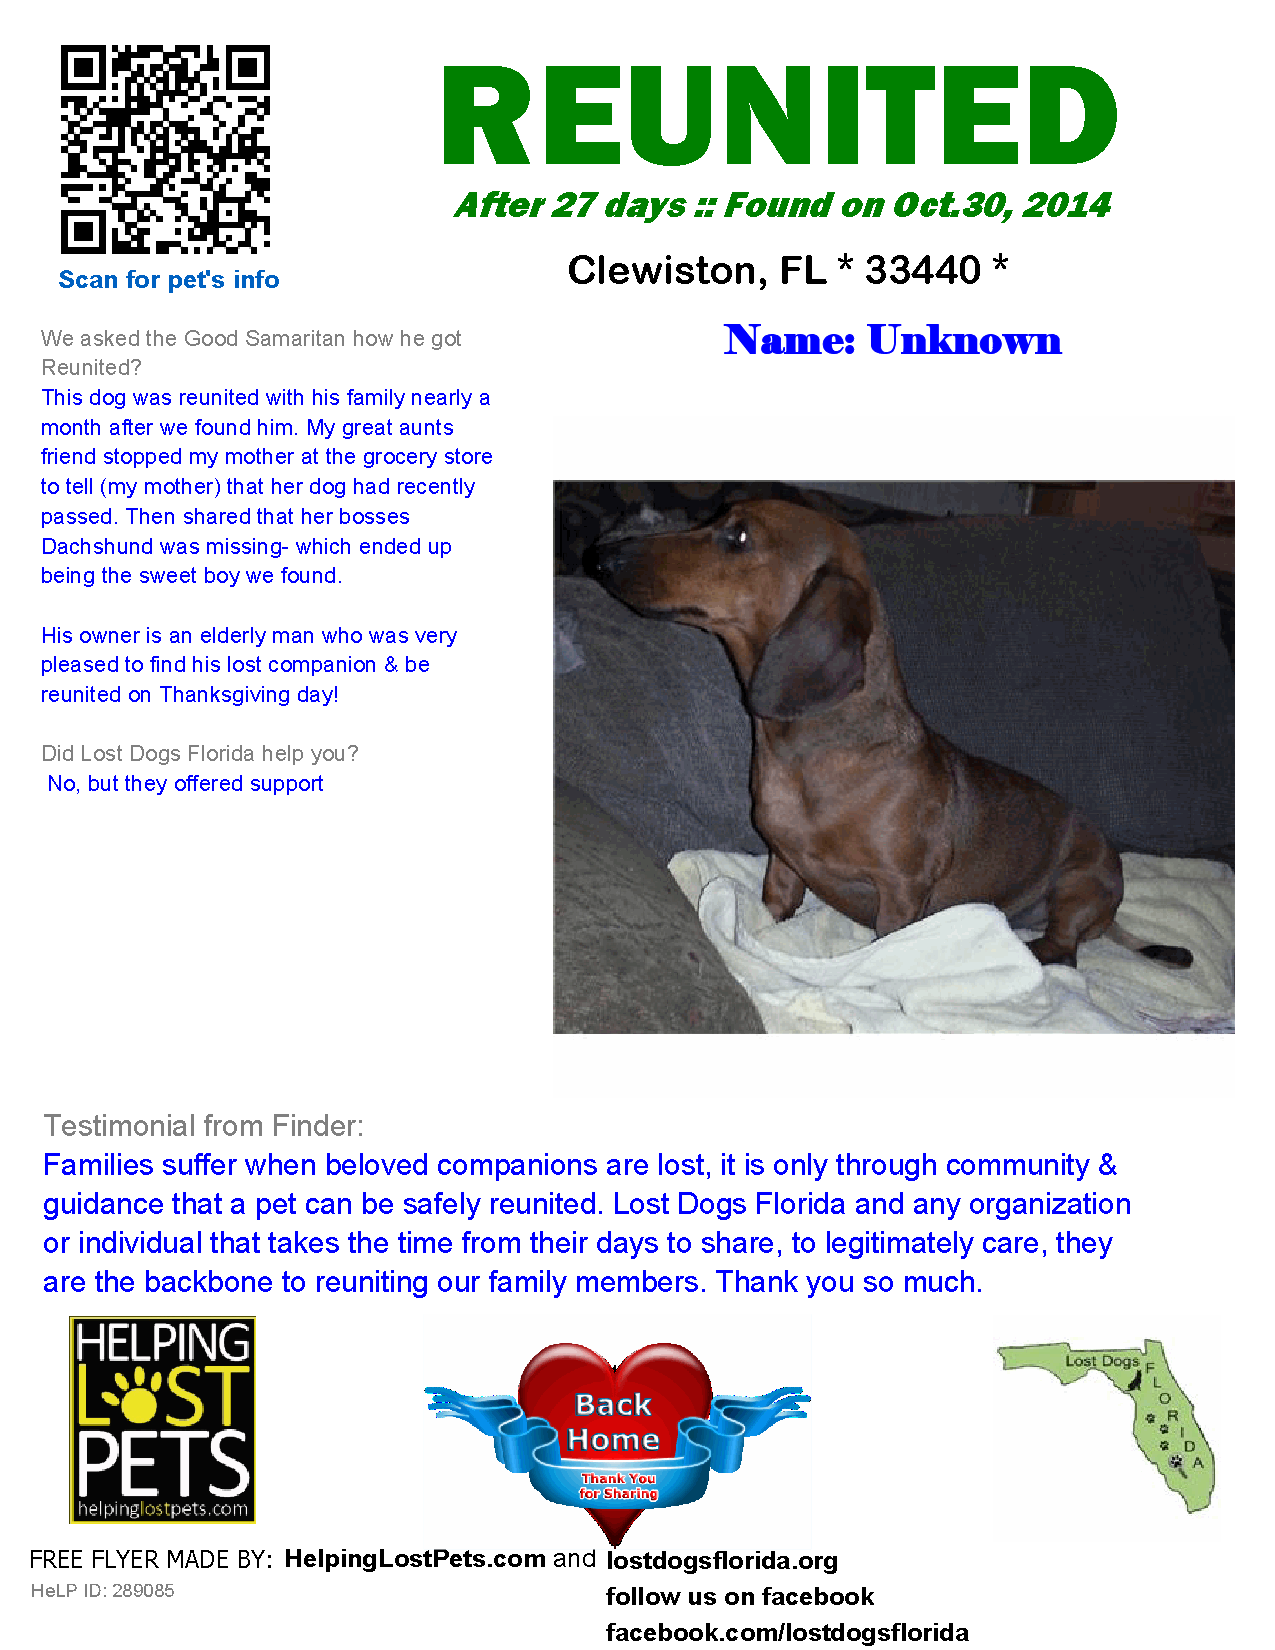 Helping Lost Pets Dog Dachshund Reunited Losing A Pet Dogs Dachshund